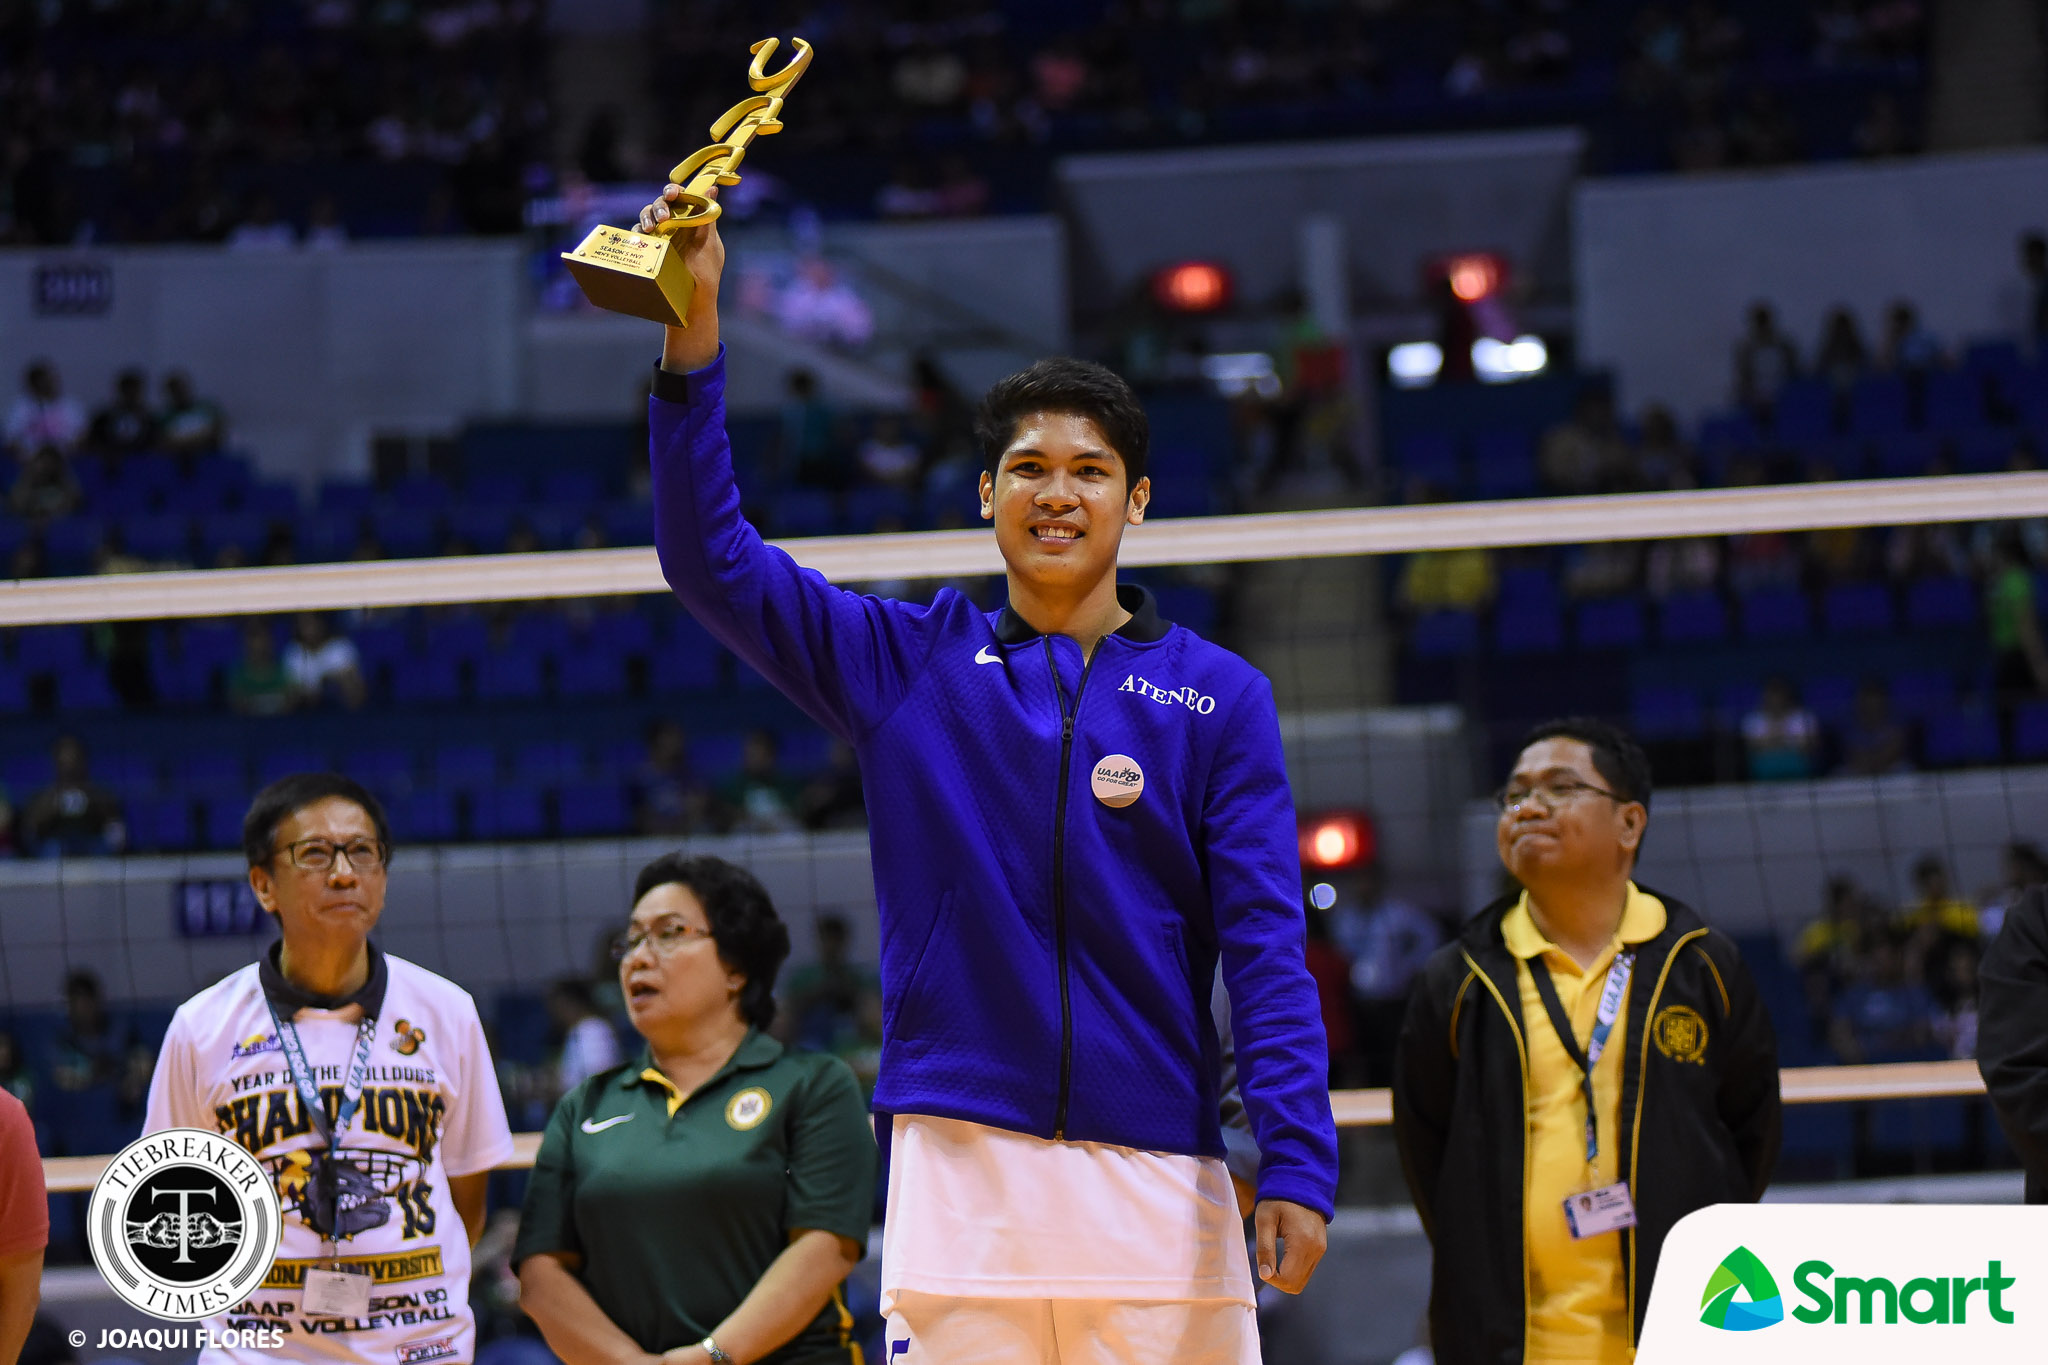 Tiebreaker Times After fruitful UAAP career, Marck Espejo looks to take act overseas ADMU News UAAP Volleyball  UAAP Season 80 Men's Volleyball UAAP Season 80 Marck Espejo Ateneo Men's Volleyball